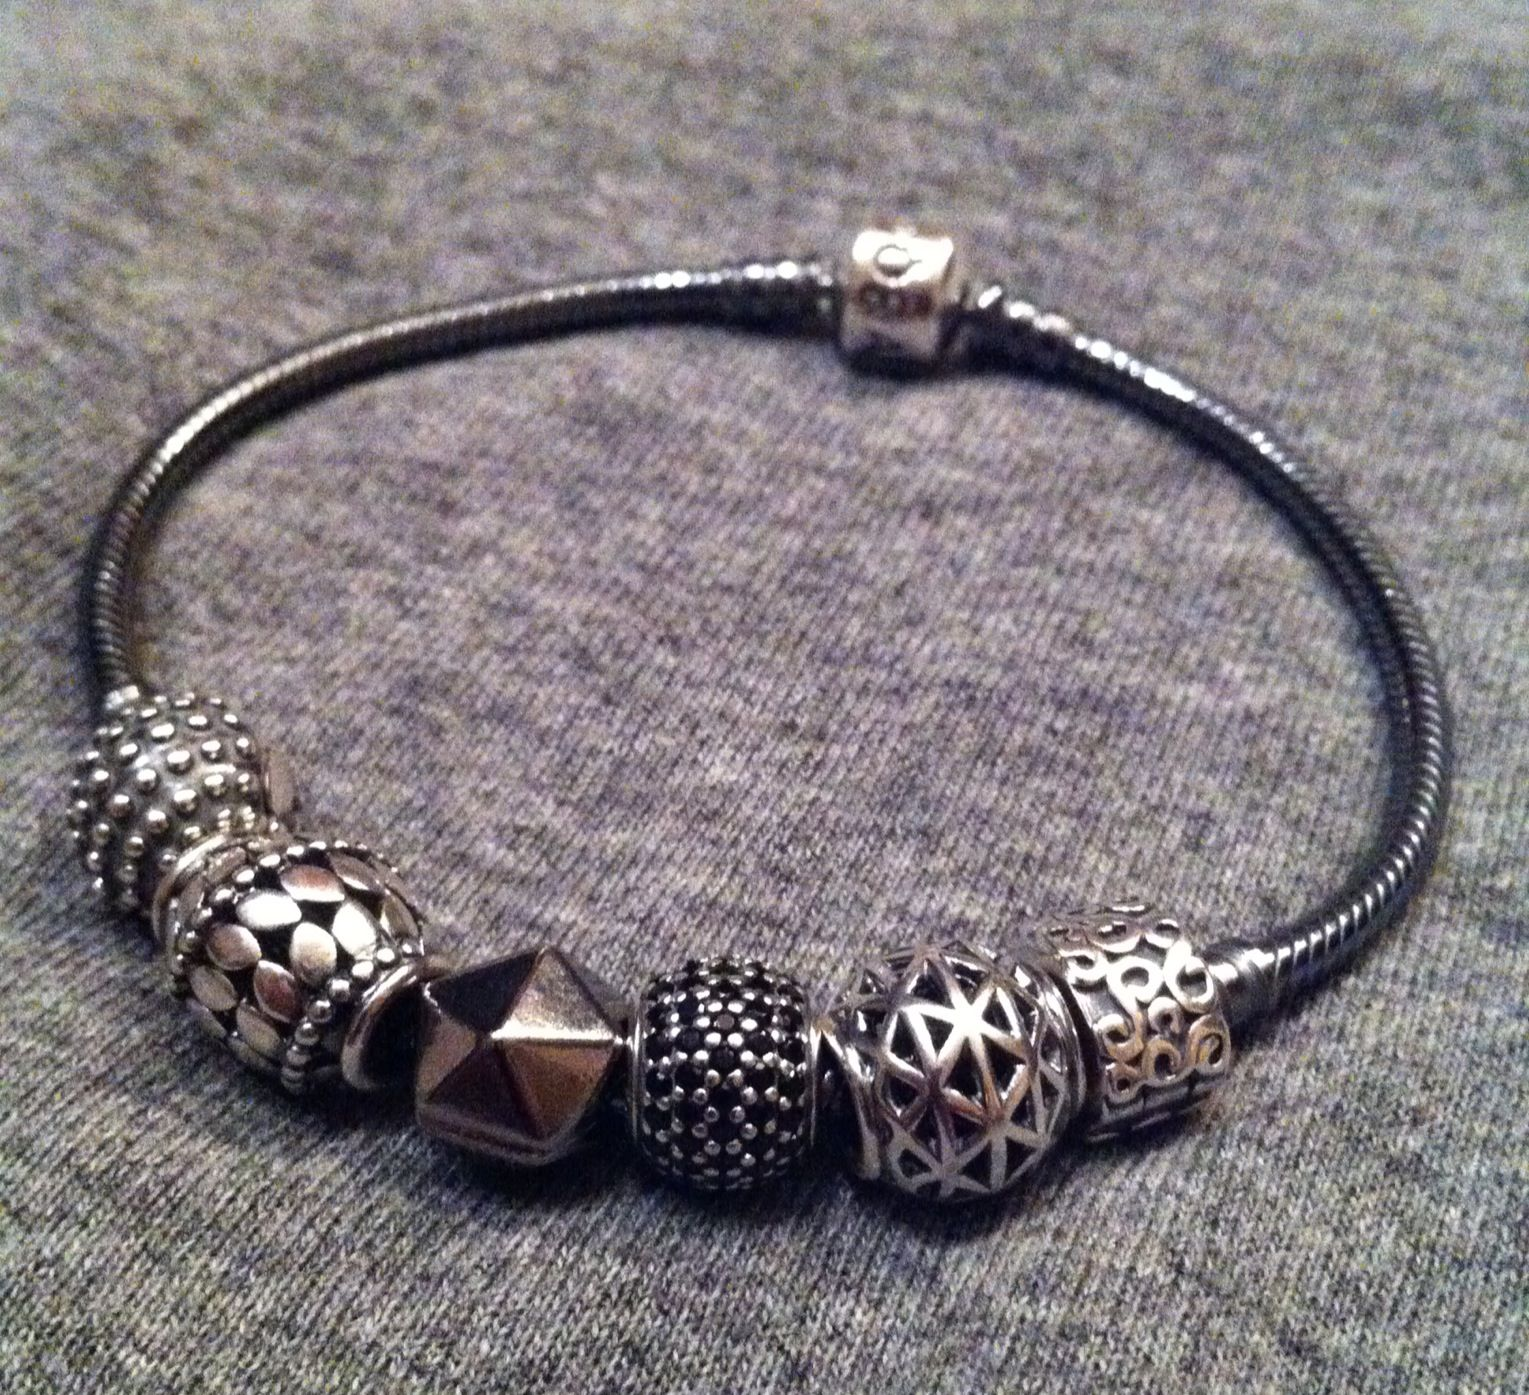 Bracelet With Charms: Best 25+ Pandora For Men Ideas On Pinterest